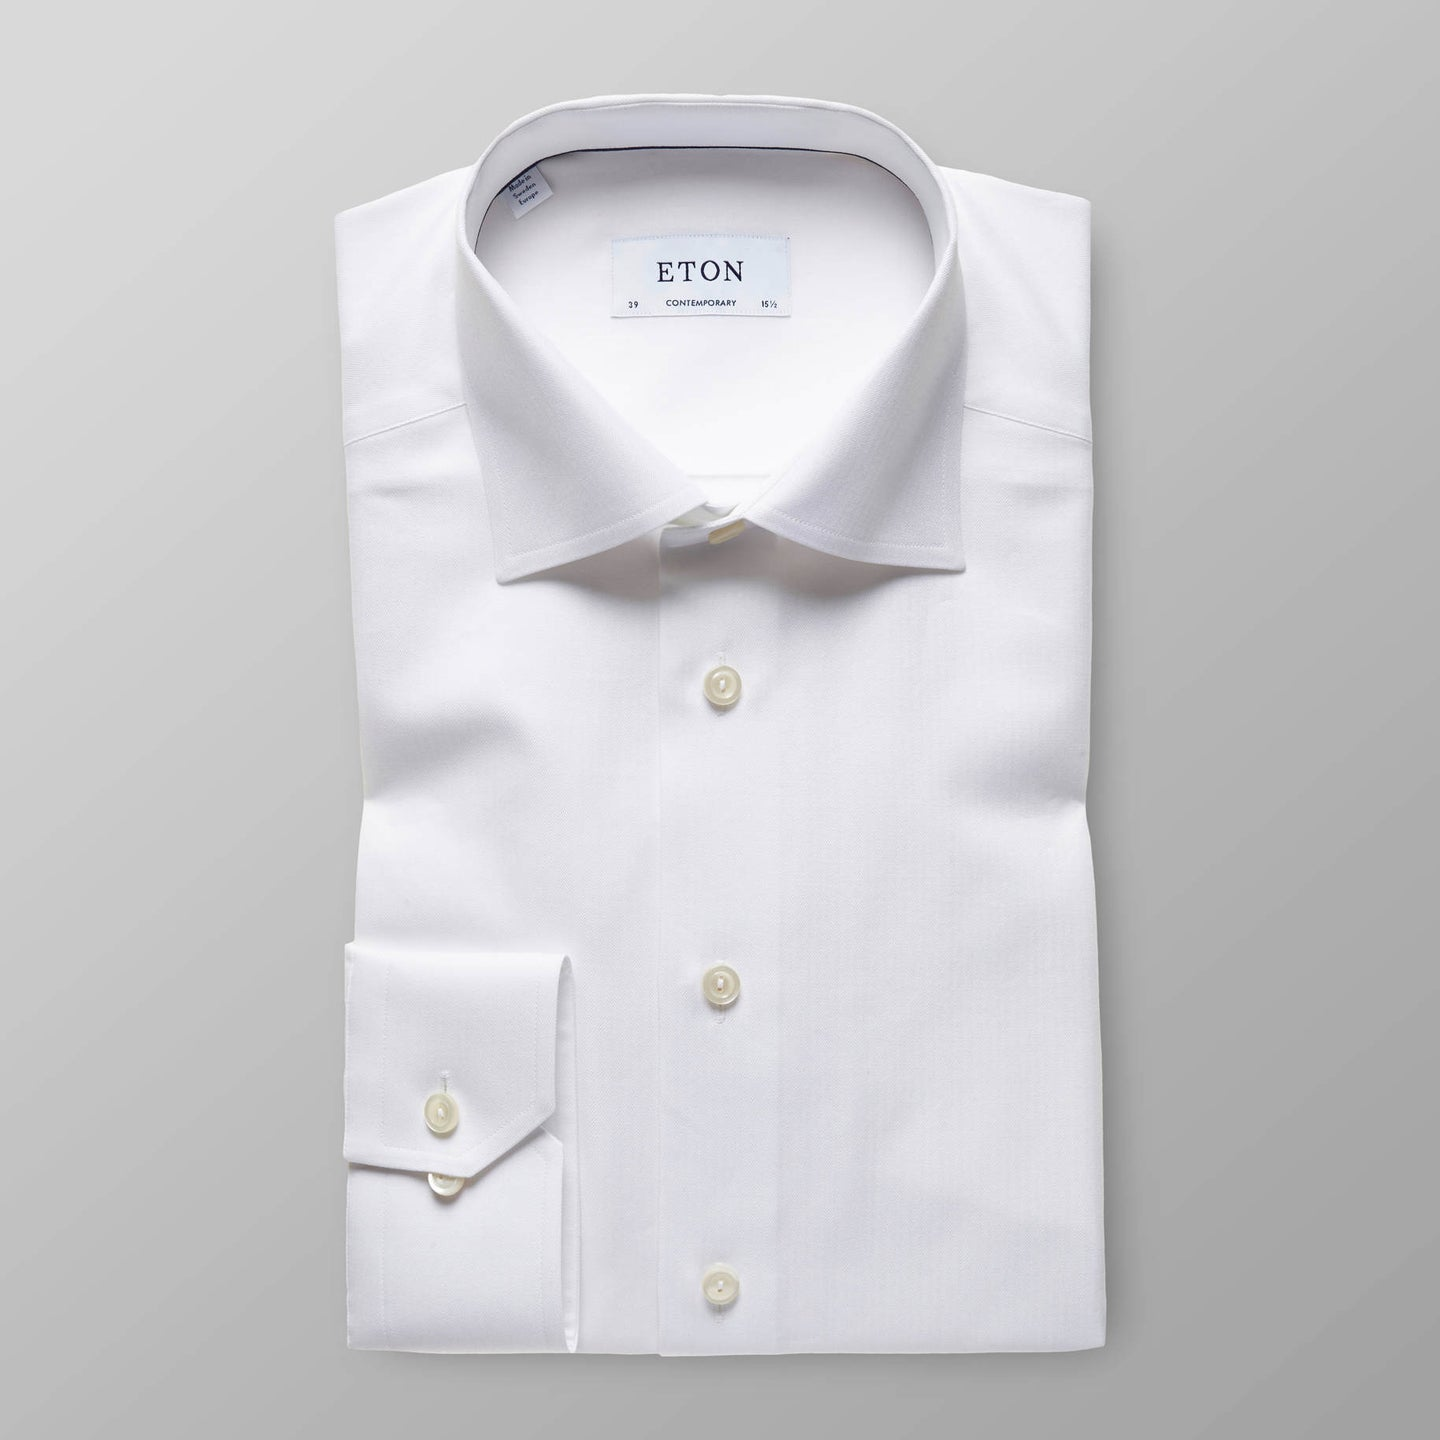 30727931100 Eton Men's White Shirt Herringbone Cotton-Tencel stocked online ireland